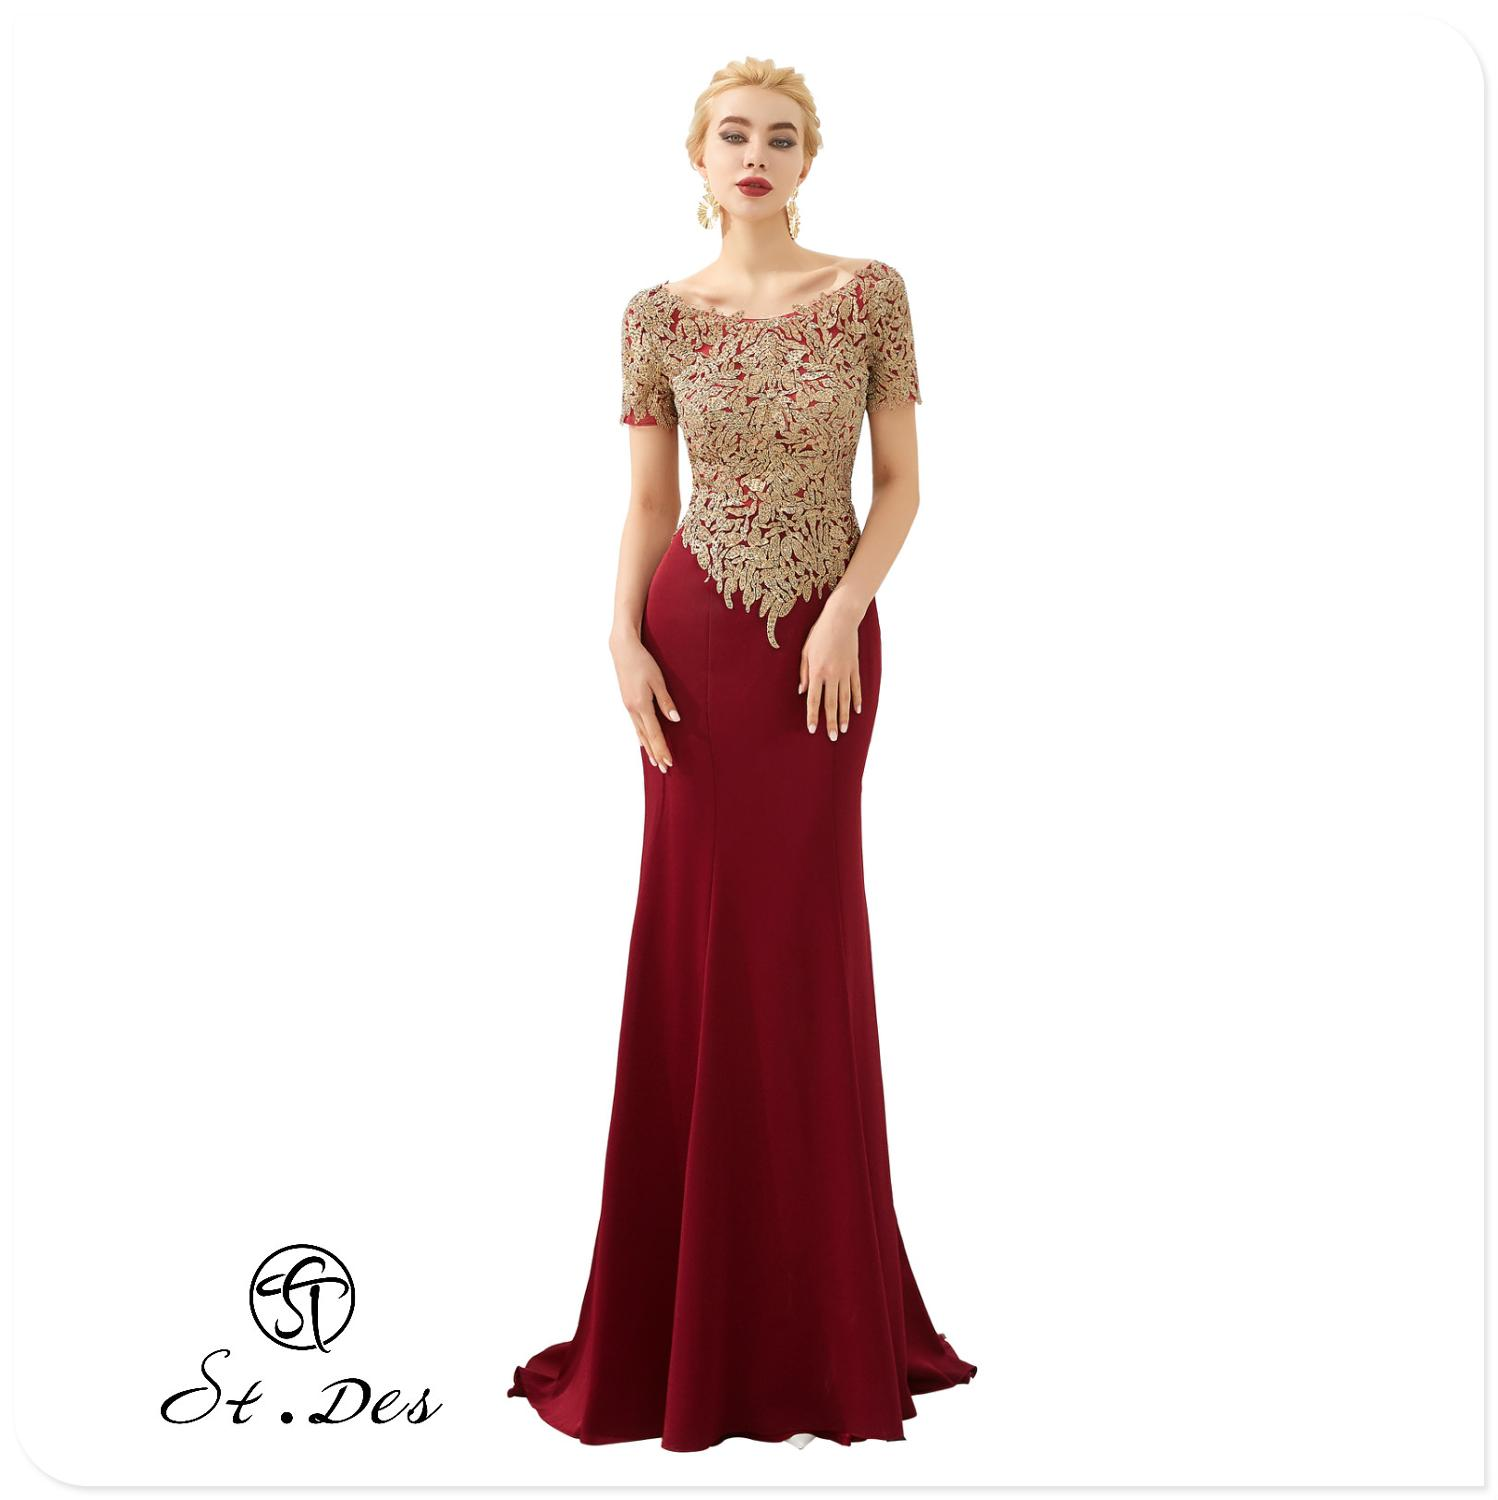 NEW 2020 St.Des Mermaid Round Neck Russian Wine Glod Sequins Short Sleeve Designer Floor Length Evening Dress Party Dress